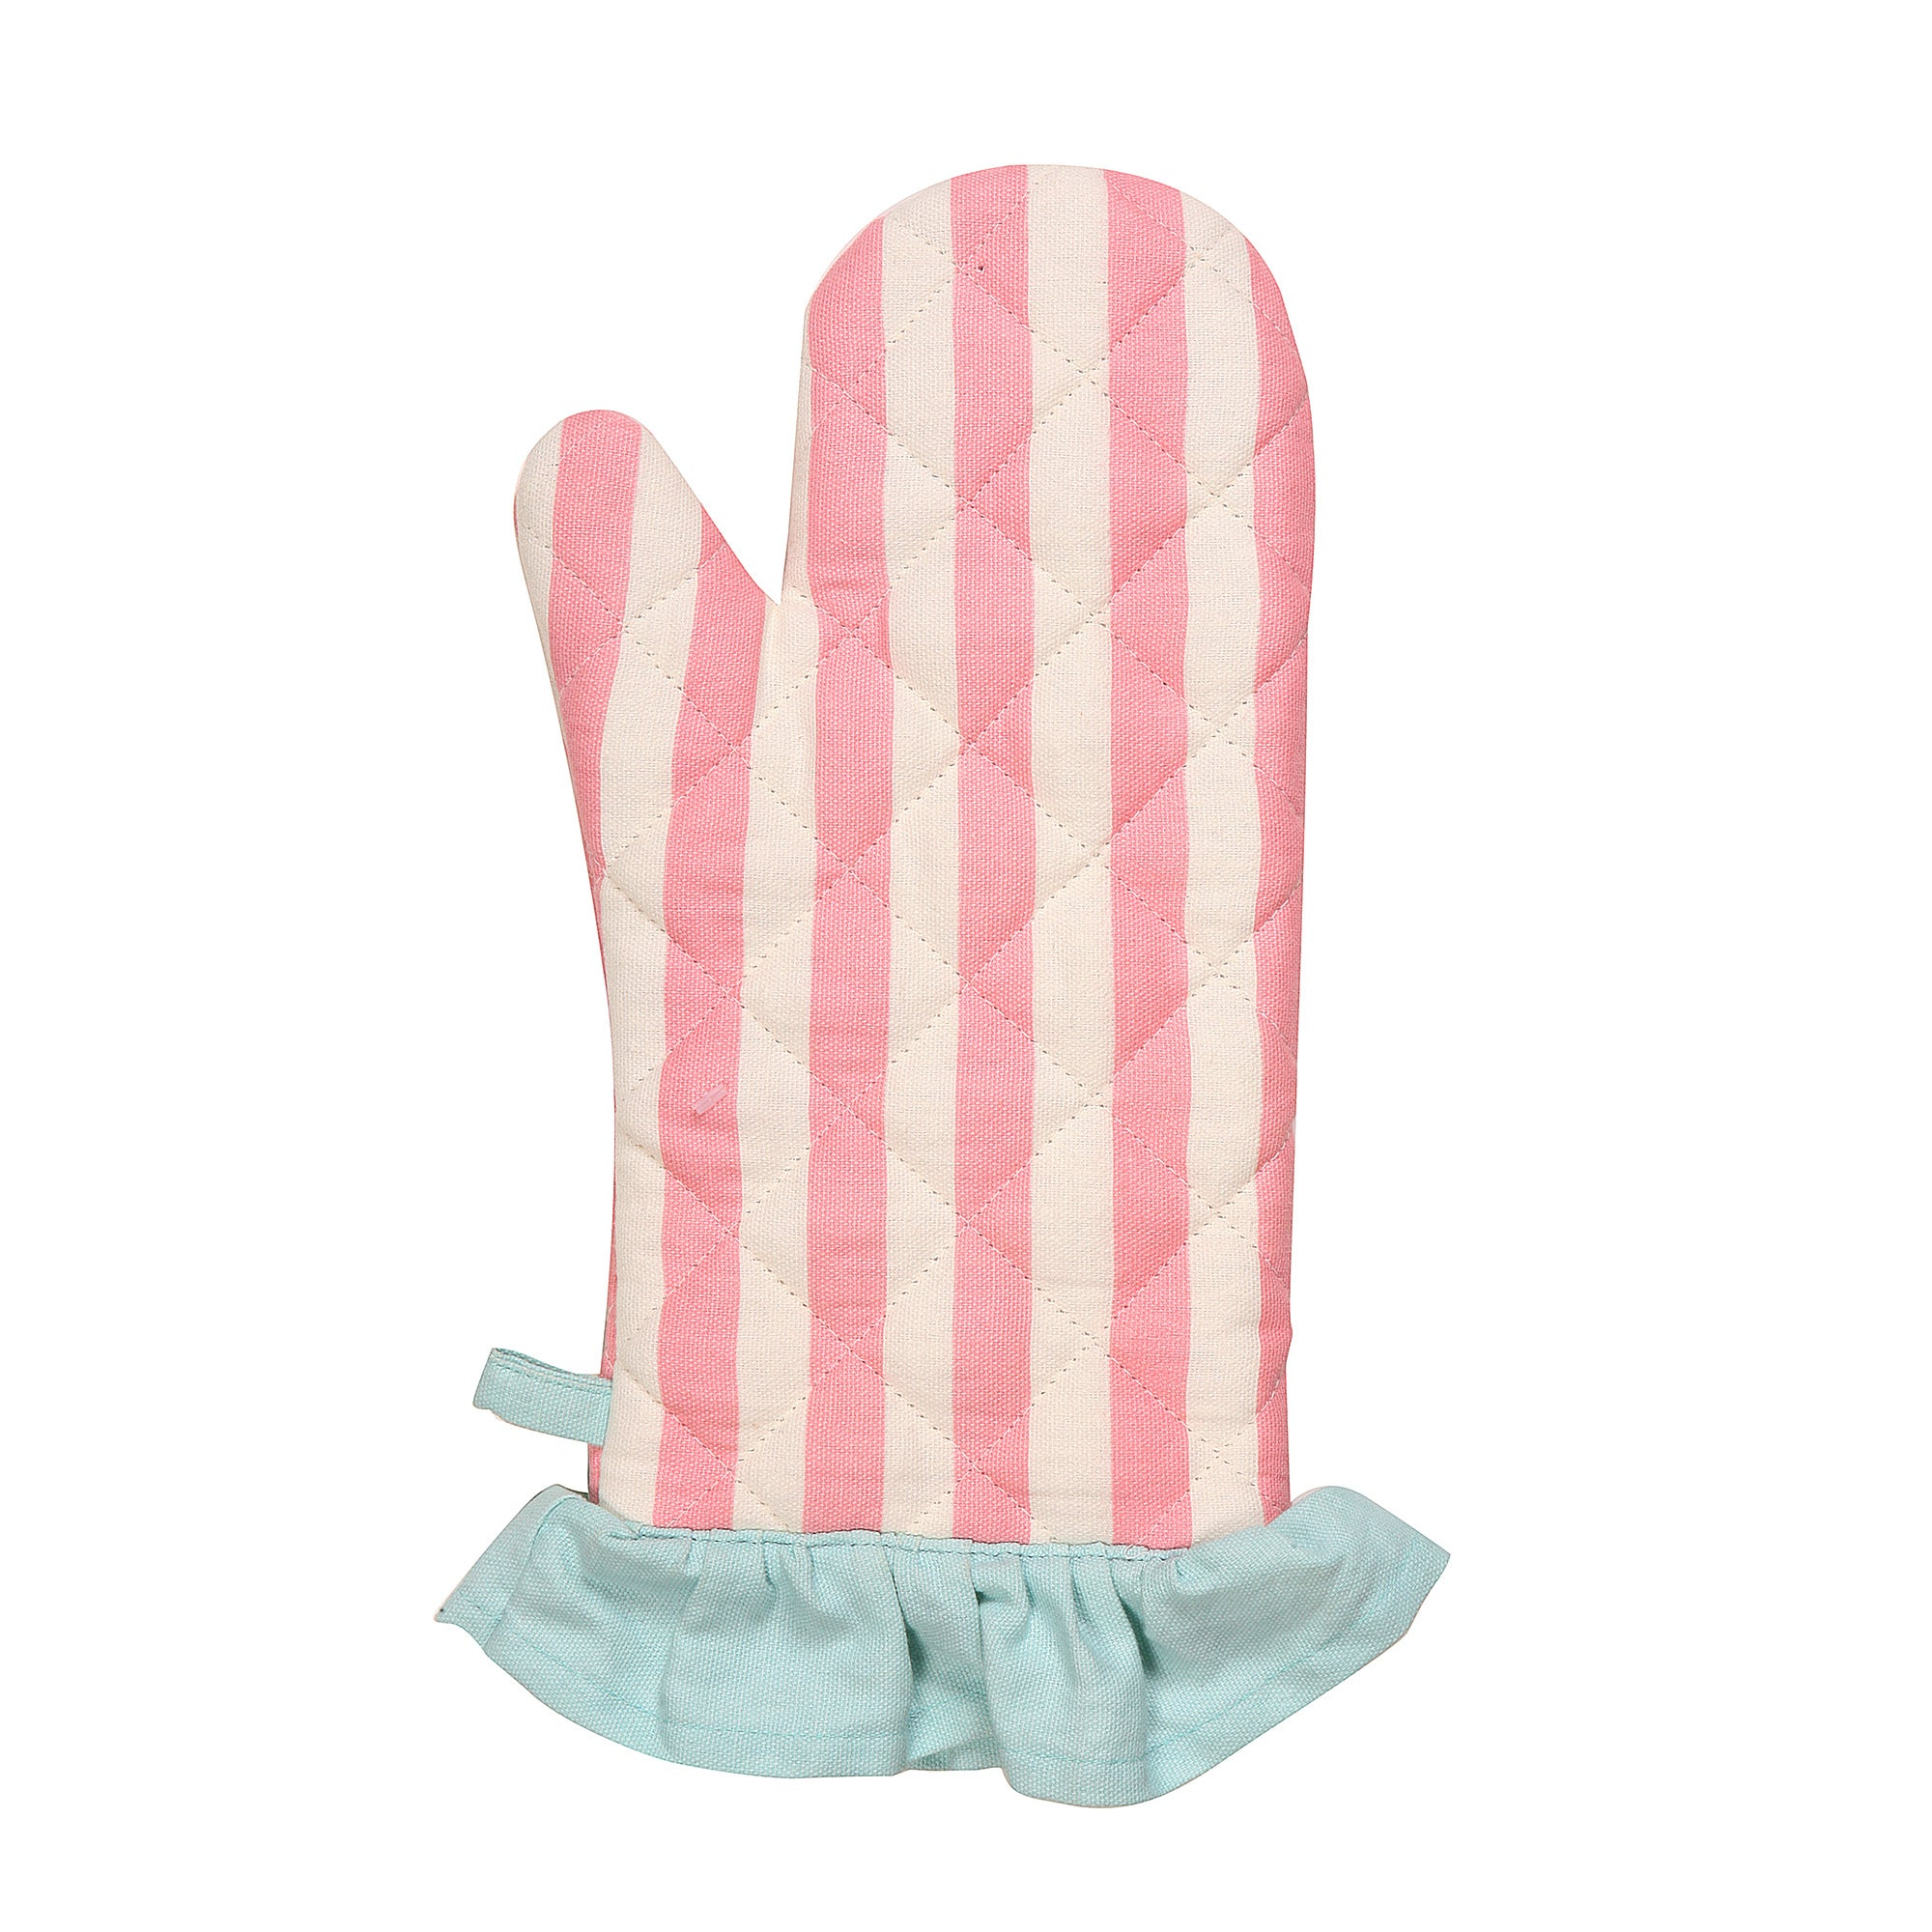 Retro Single Oven Glove with Frill